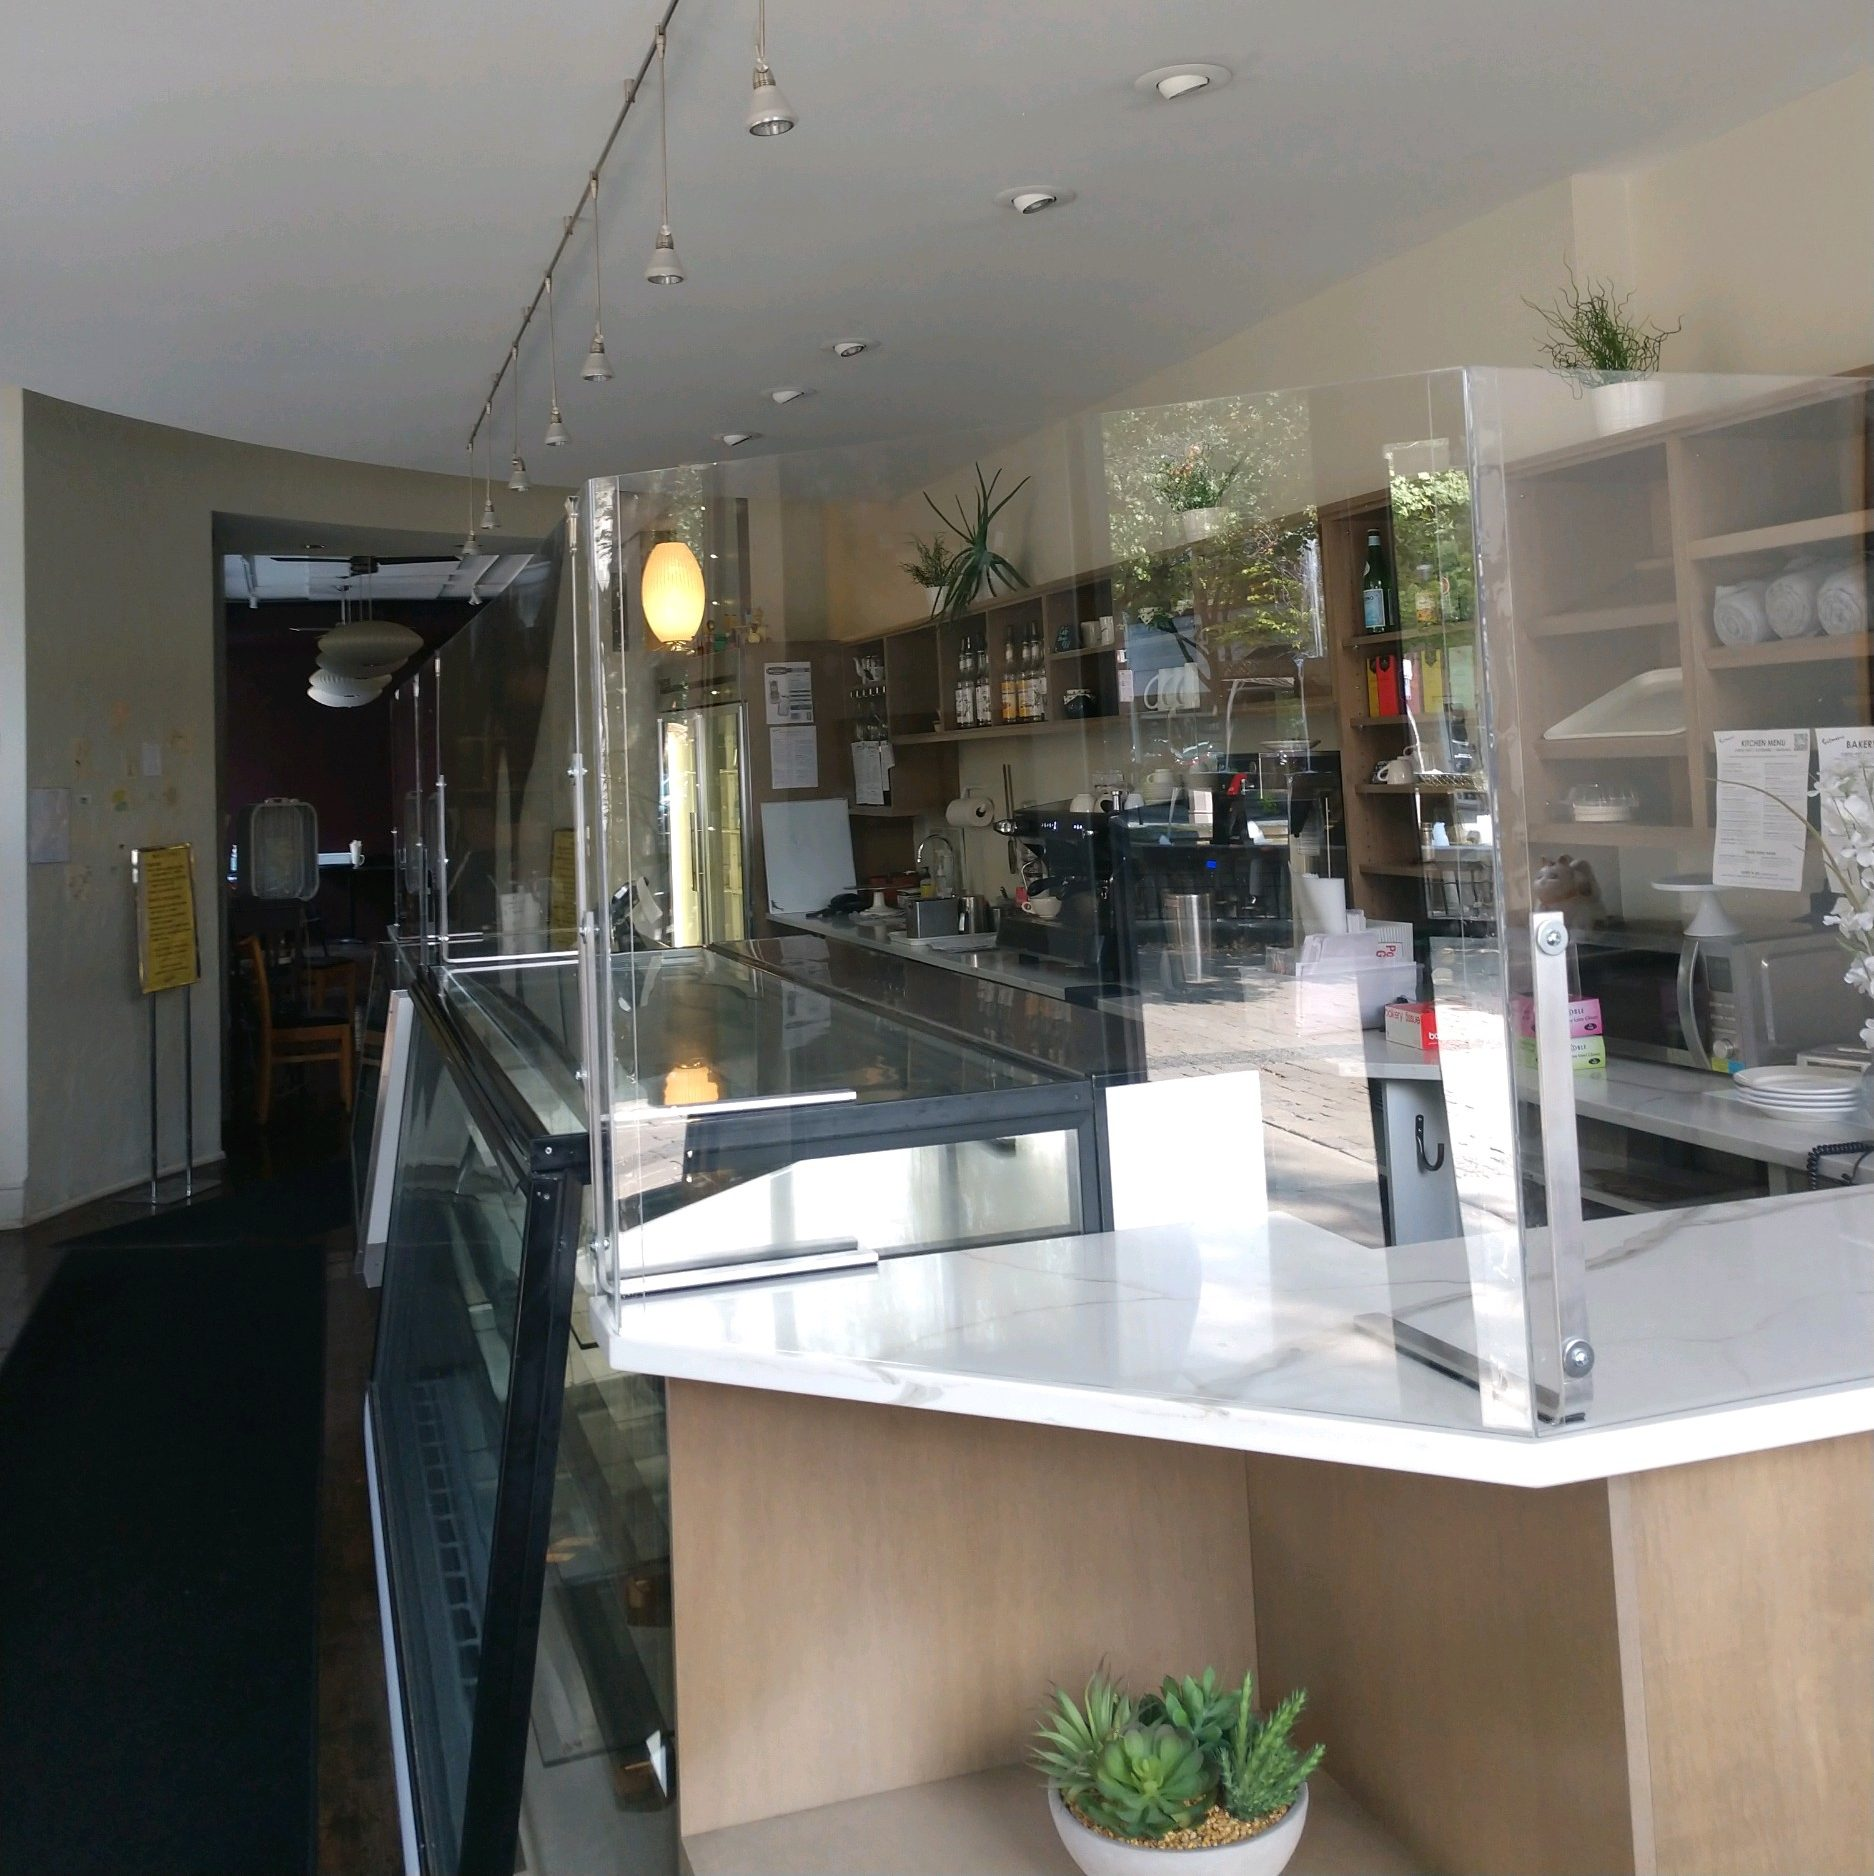 Bakery counter with plexiglass partitions